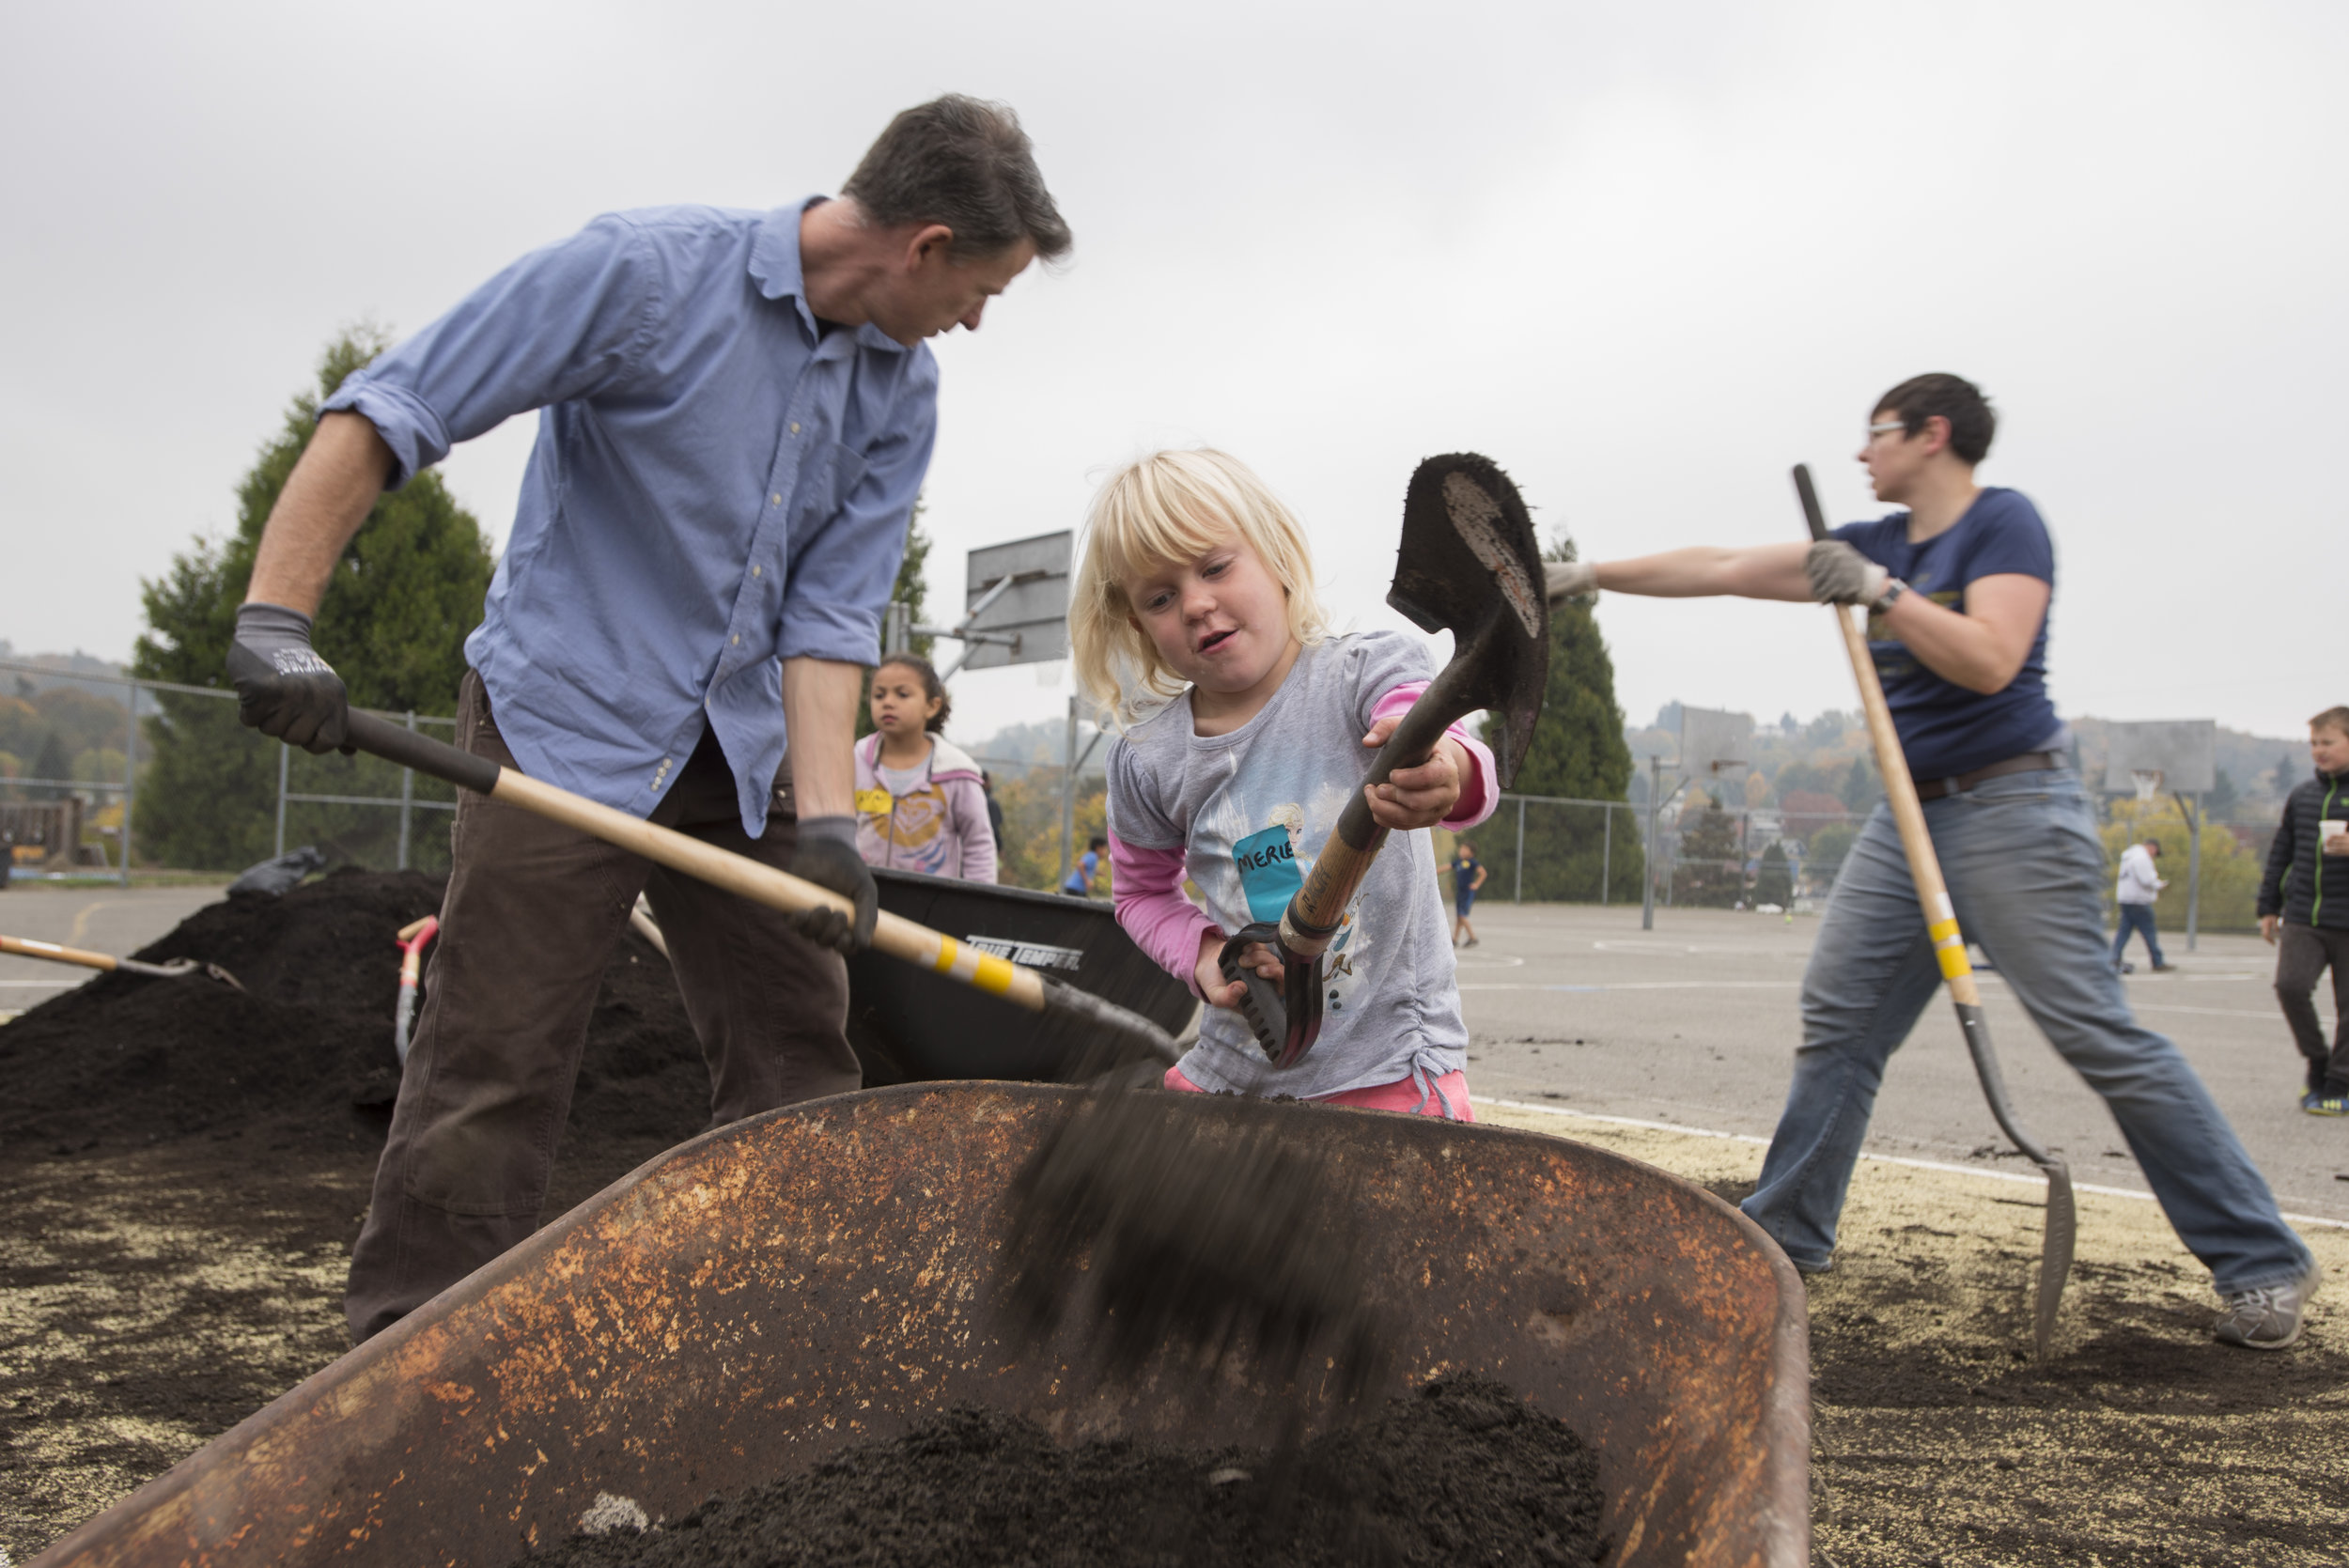 A young girl dumps soil in a wheelbarrow at Hawthorne Elementary in October, 2018. © Hannah Letinich